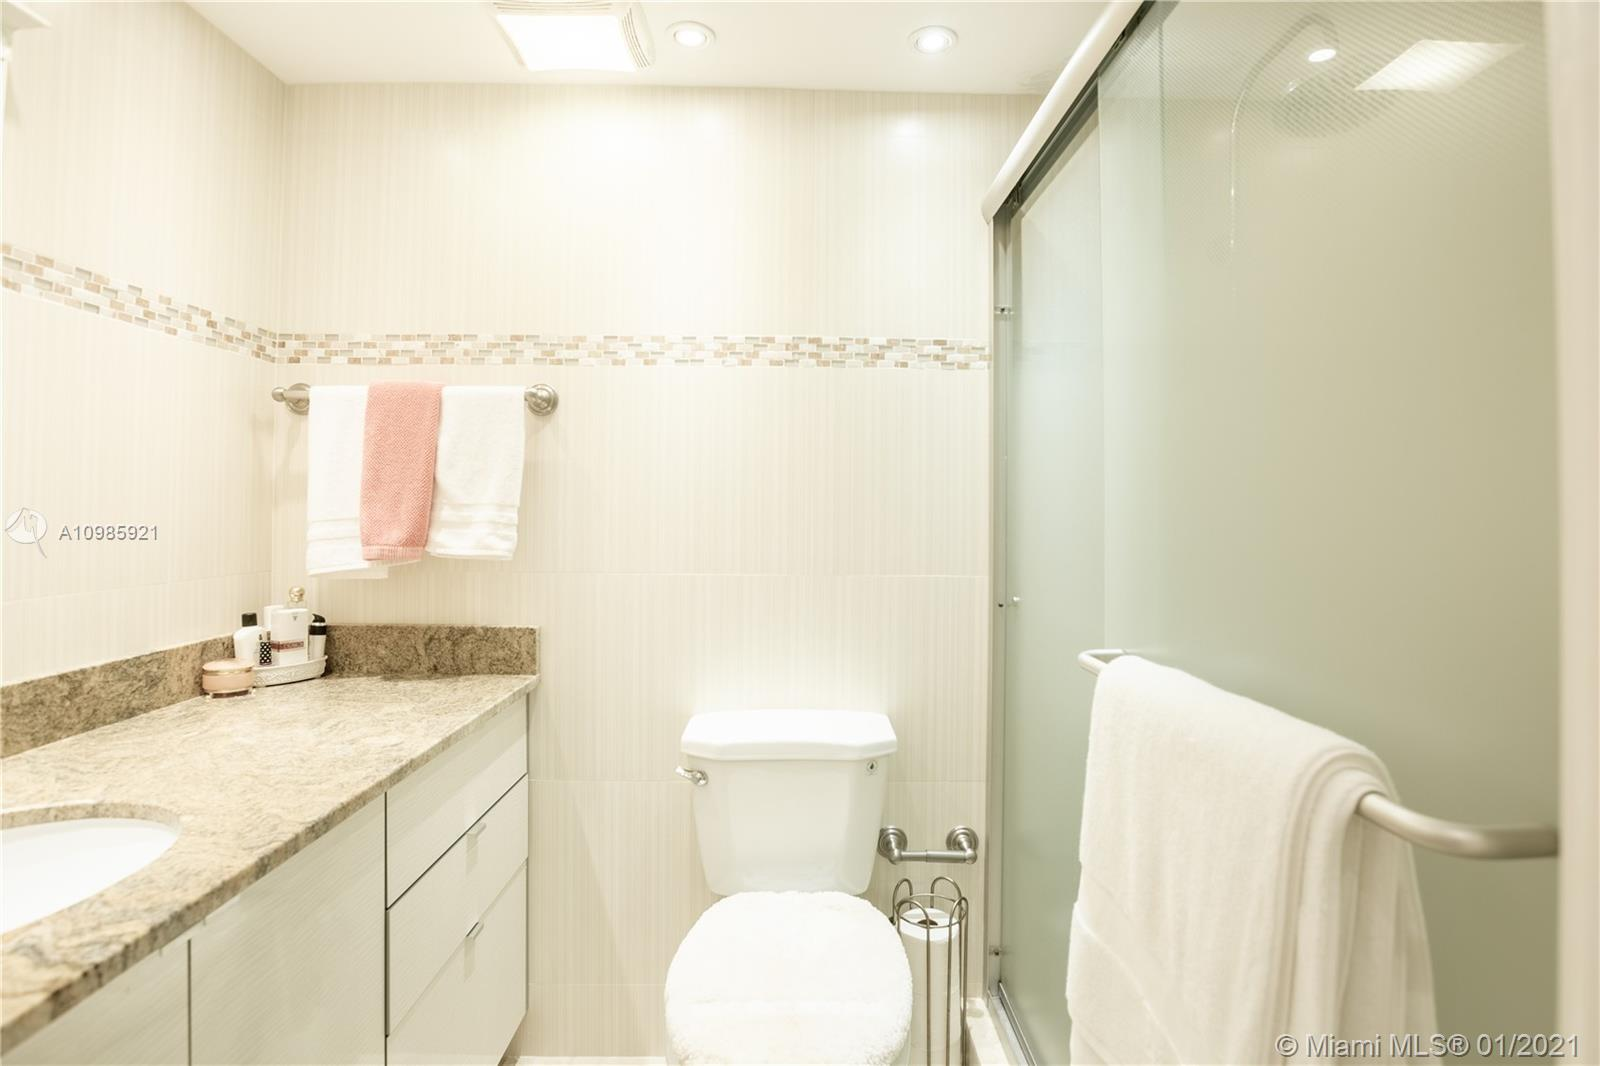 251 174 St # 1510, Sunny Isles Beach, Florida 33160, ,1 BathroomBathrooms,Residential,For Sale,251 174 St # 1510,A10985921